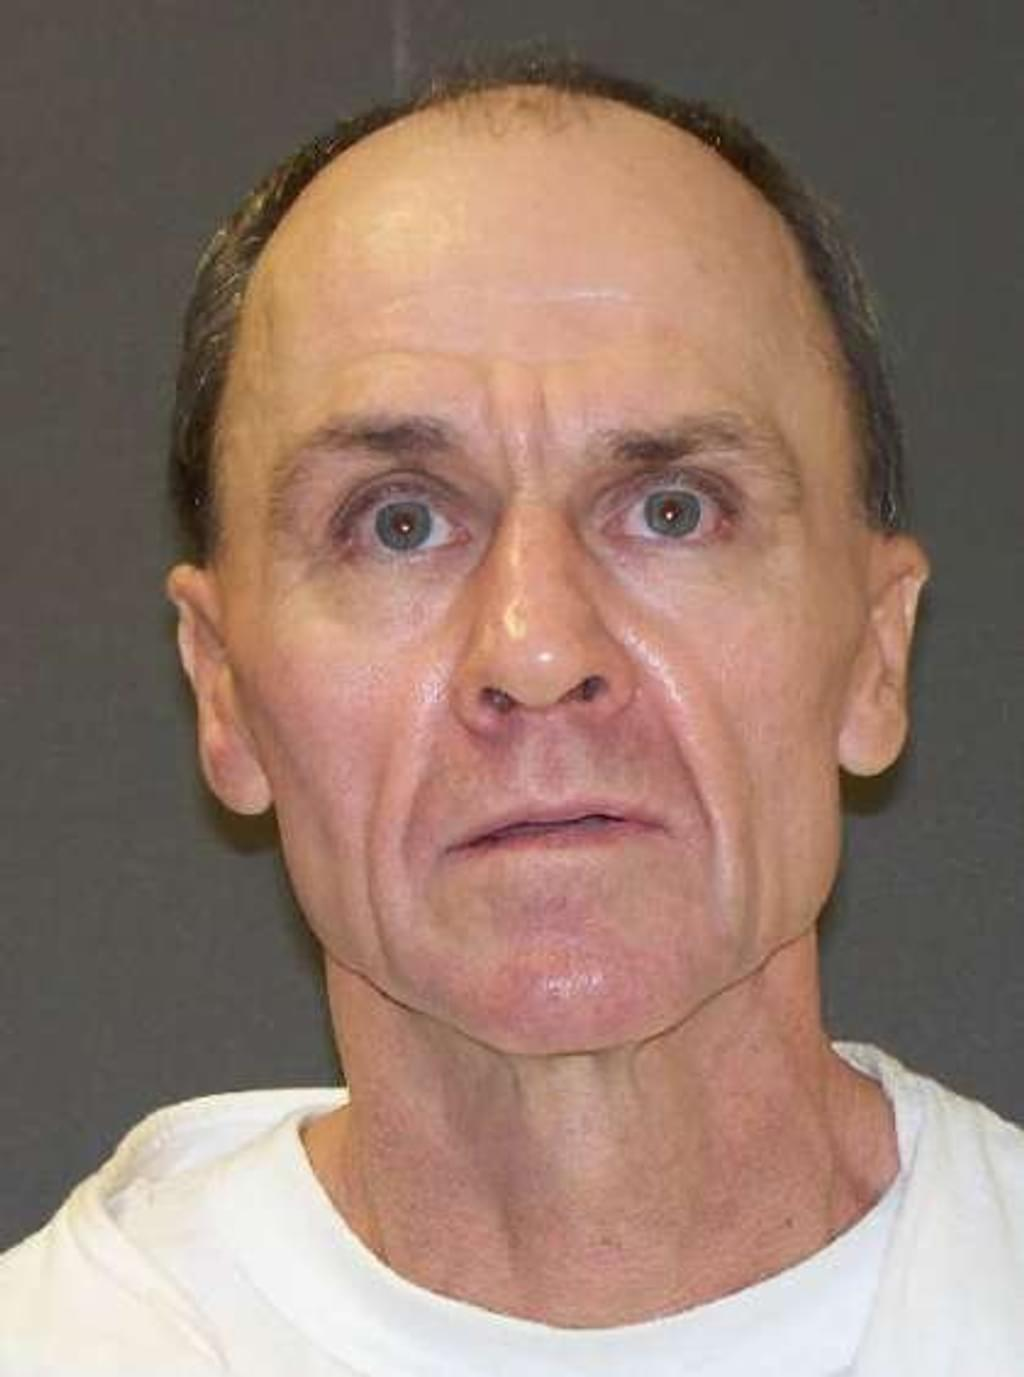 News Brief — Texas Appeals Court Stays Randall Mays' Execution on Issue of Intellectual Disability